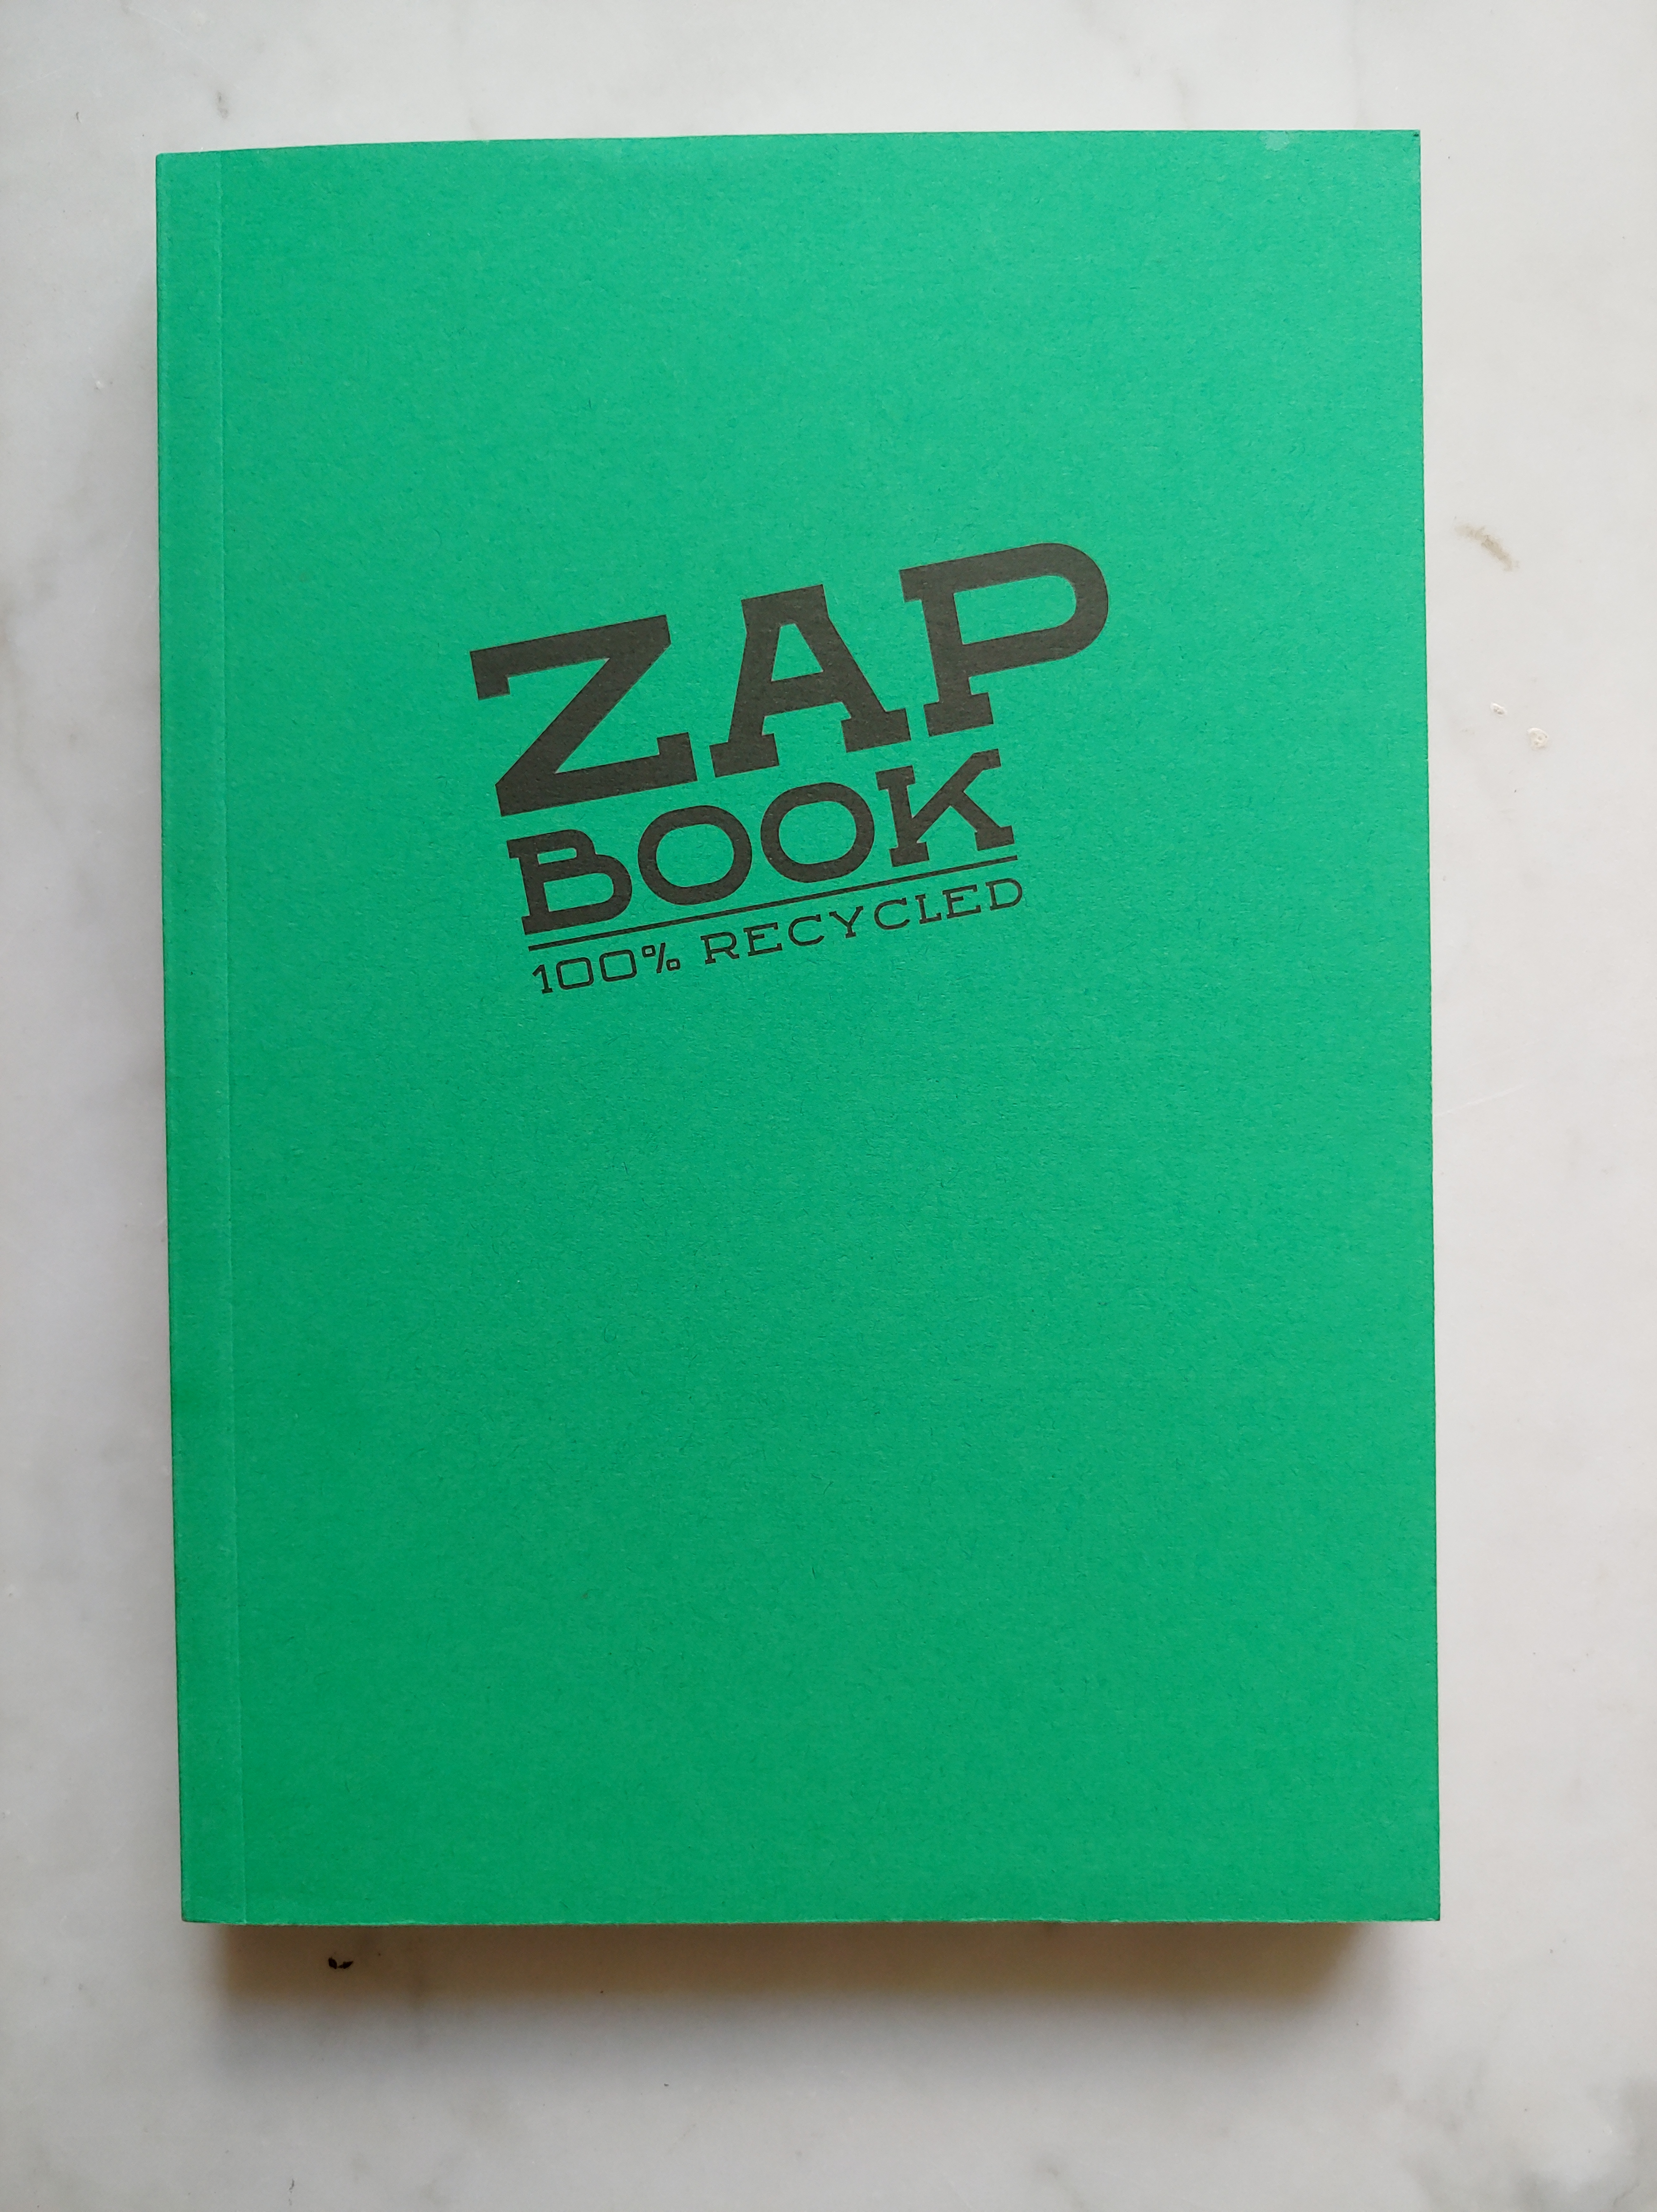 Bright green Zap Book